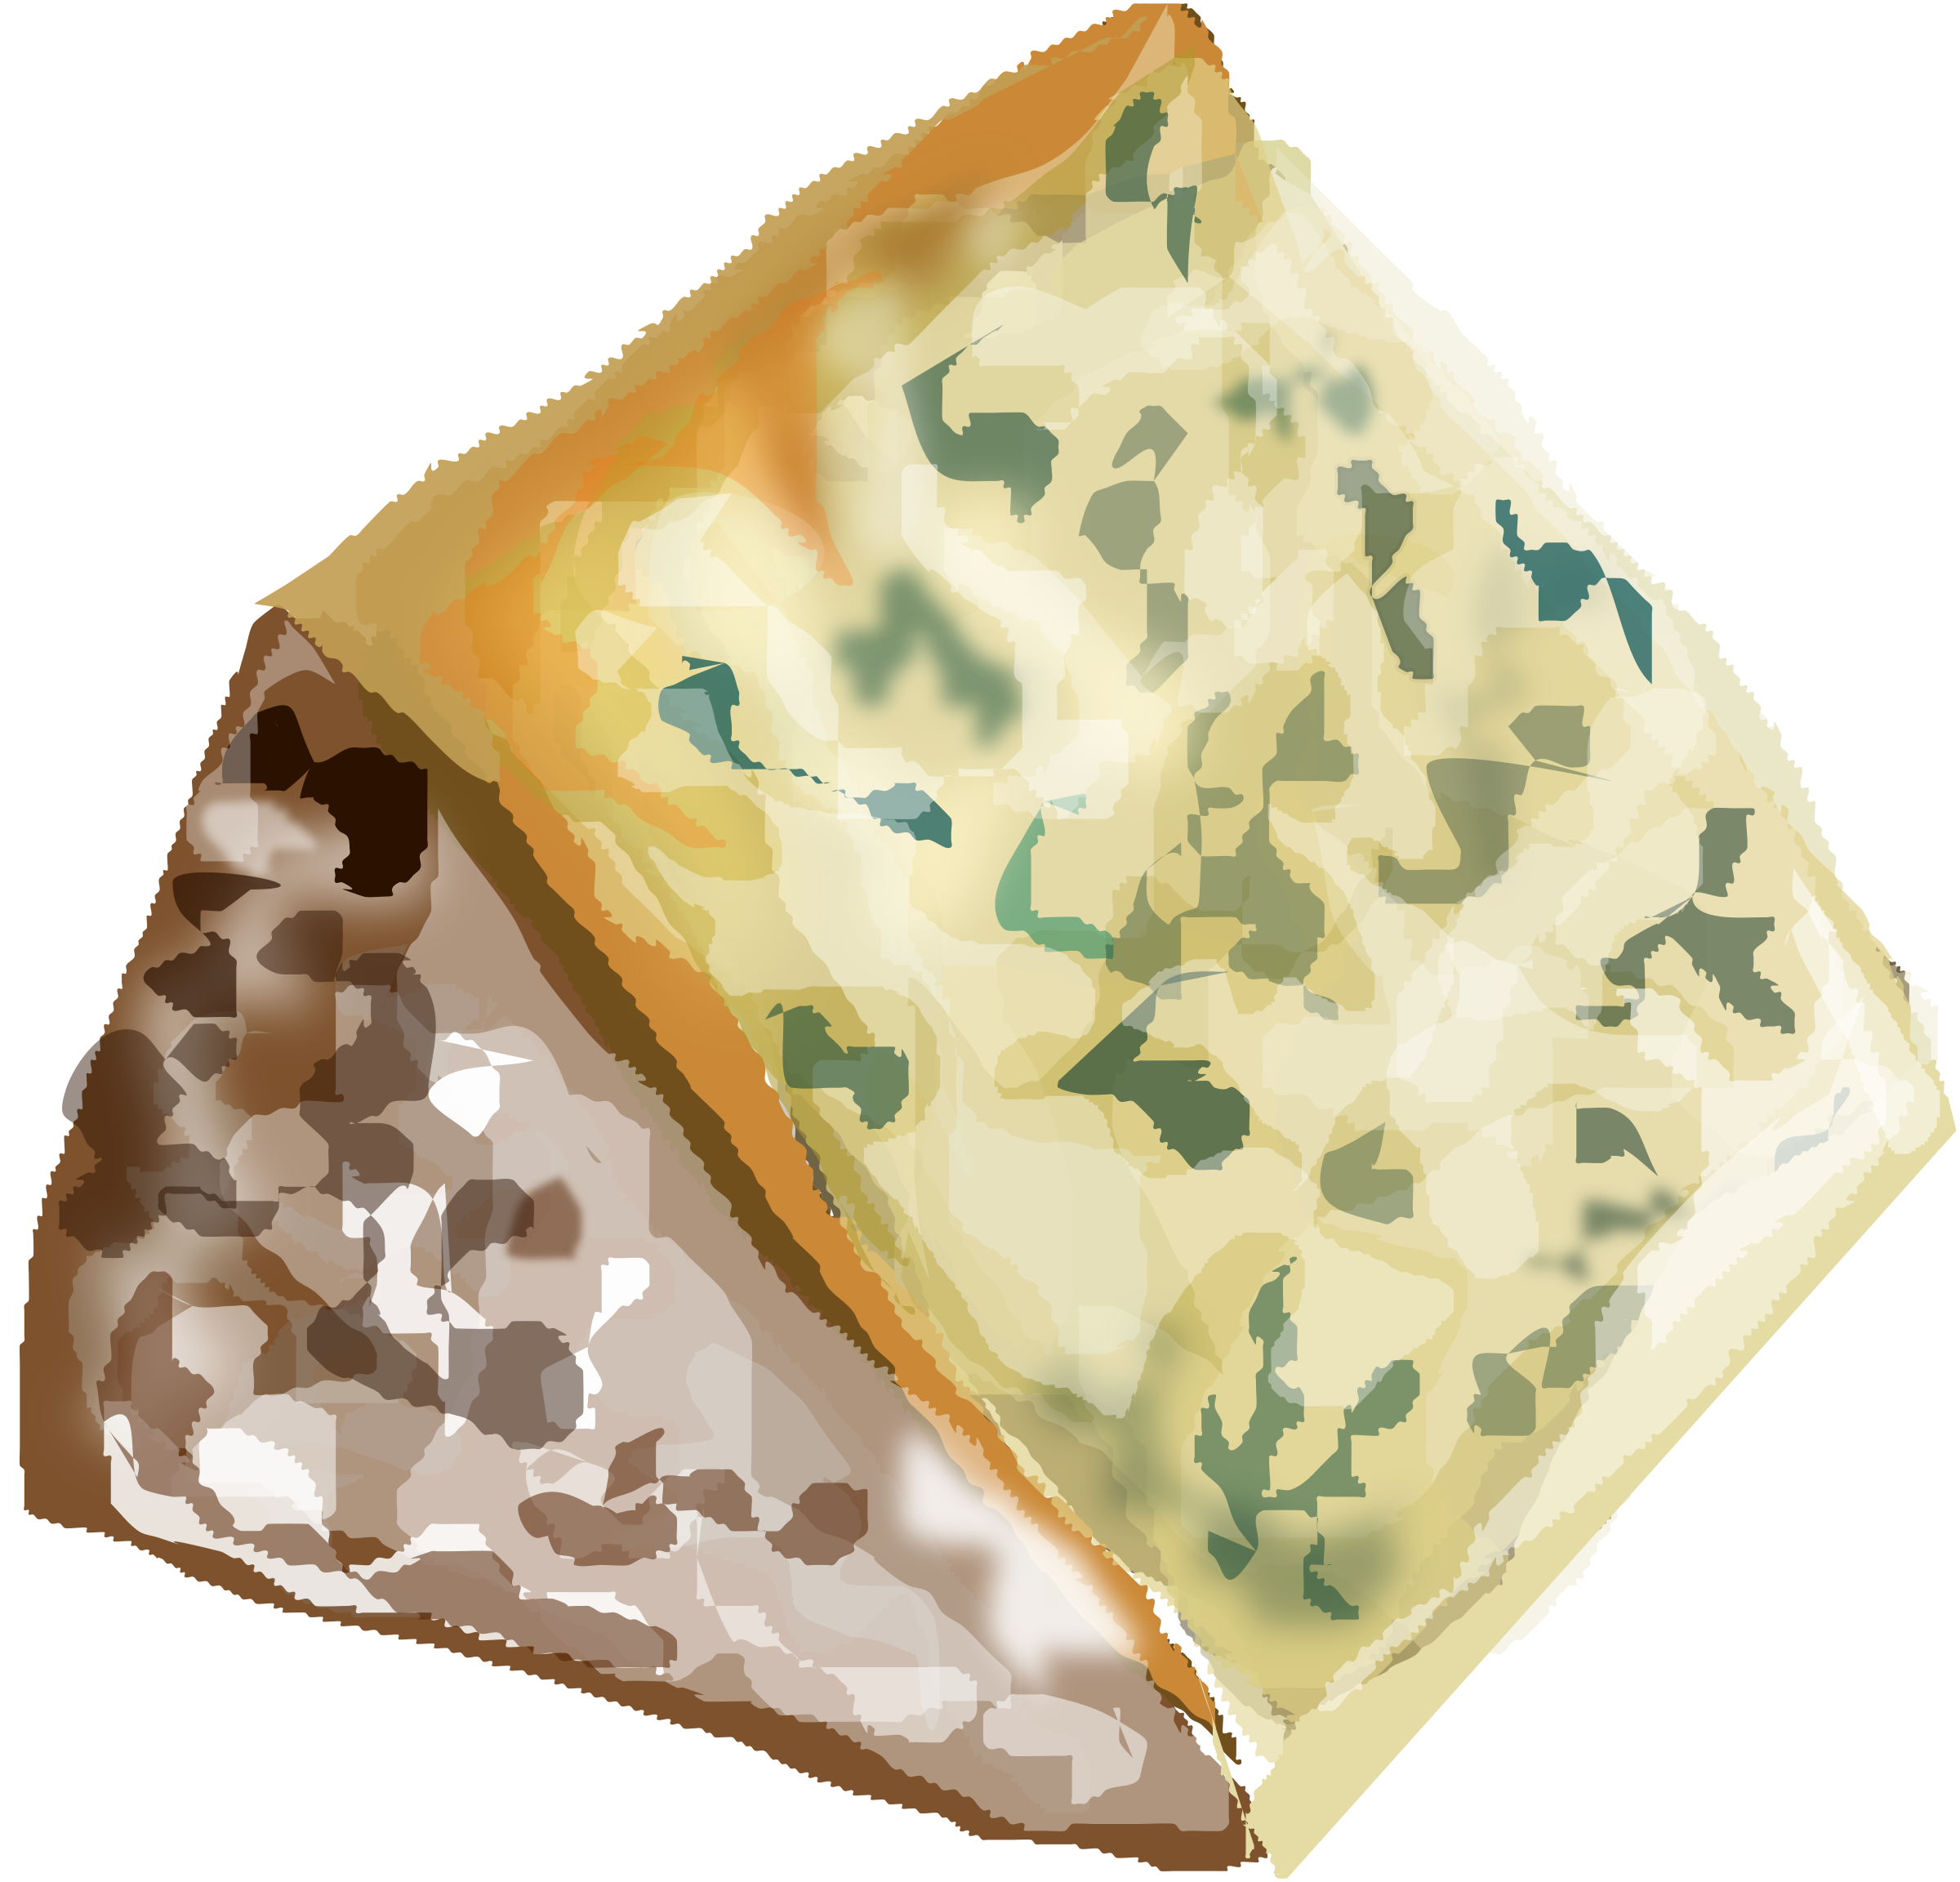 Blue cheese clipart.